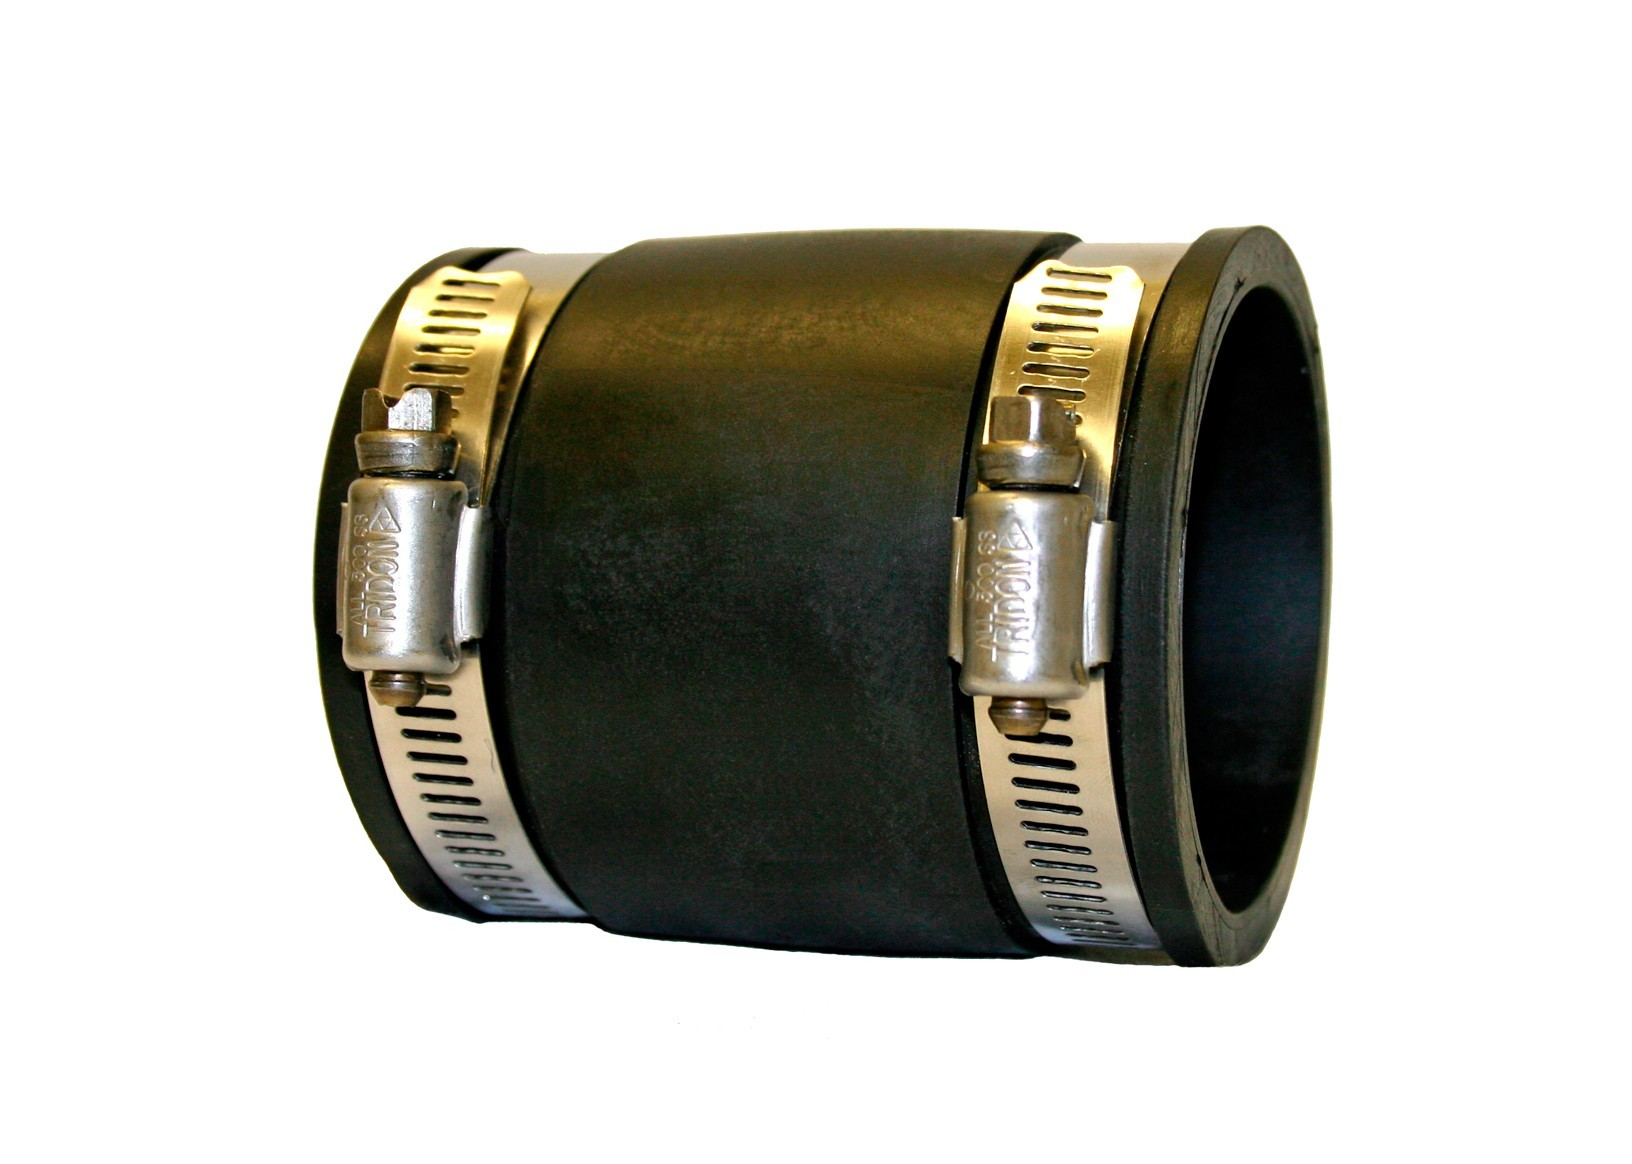 Evolution Aqua Eazy Connector straight connector